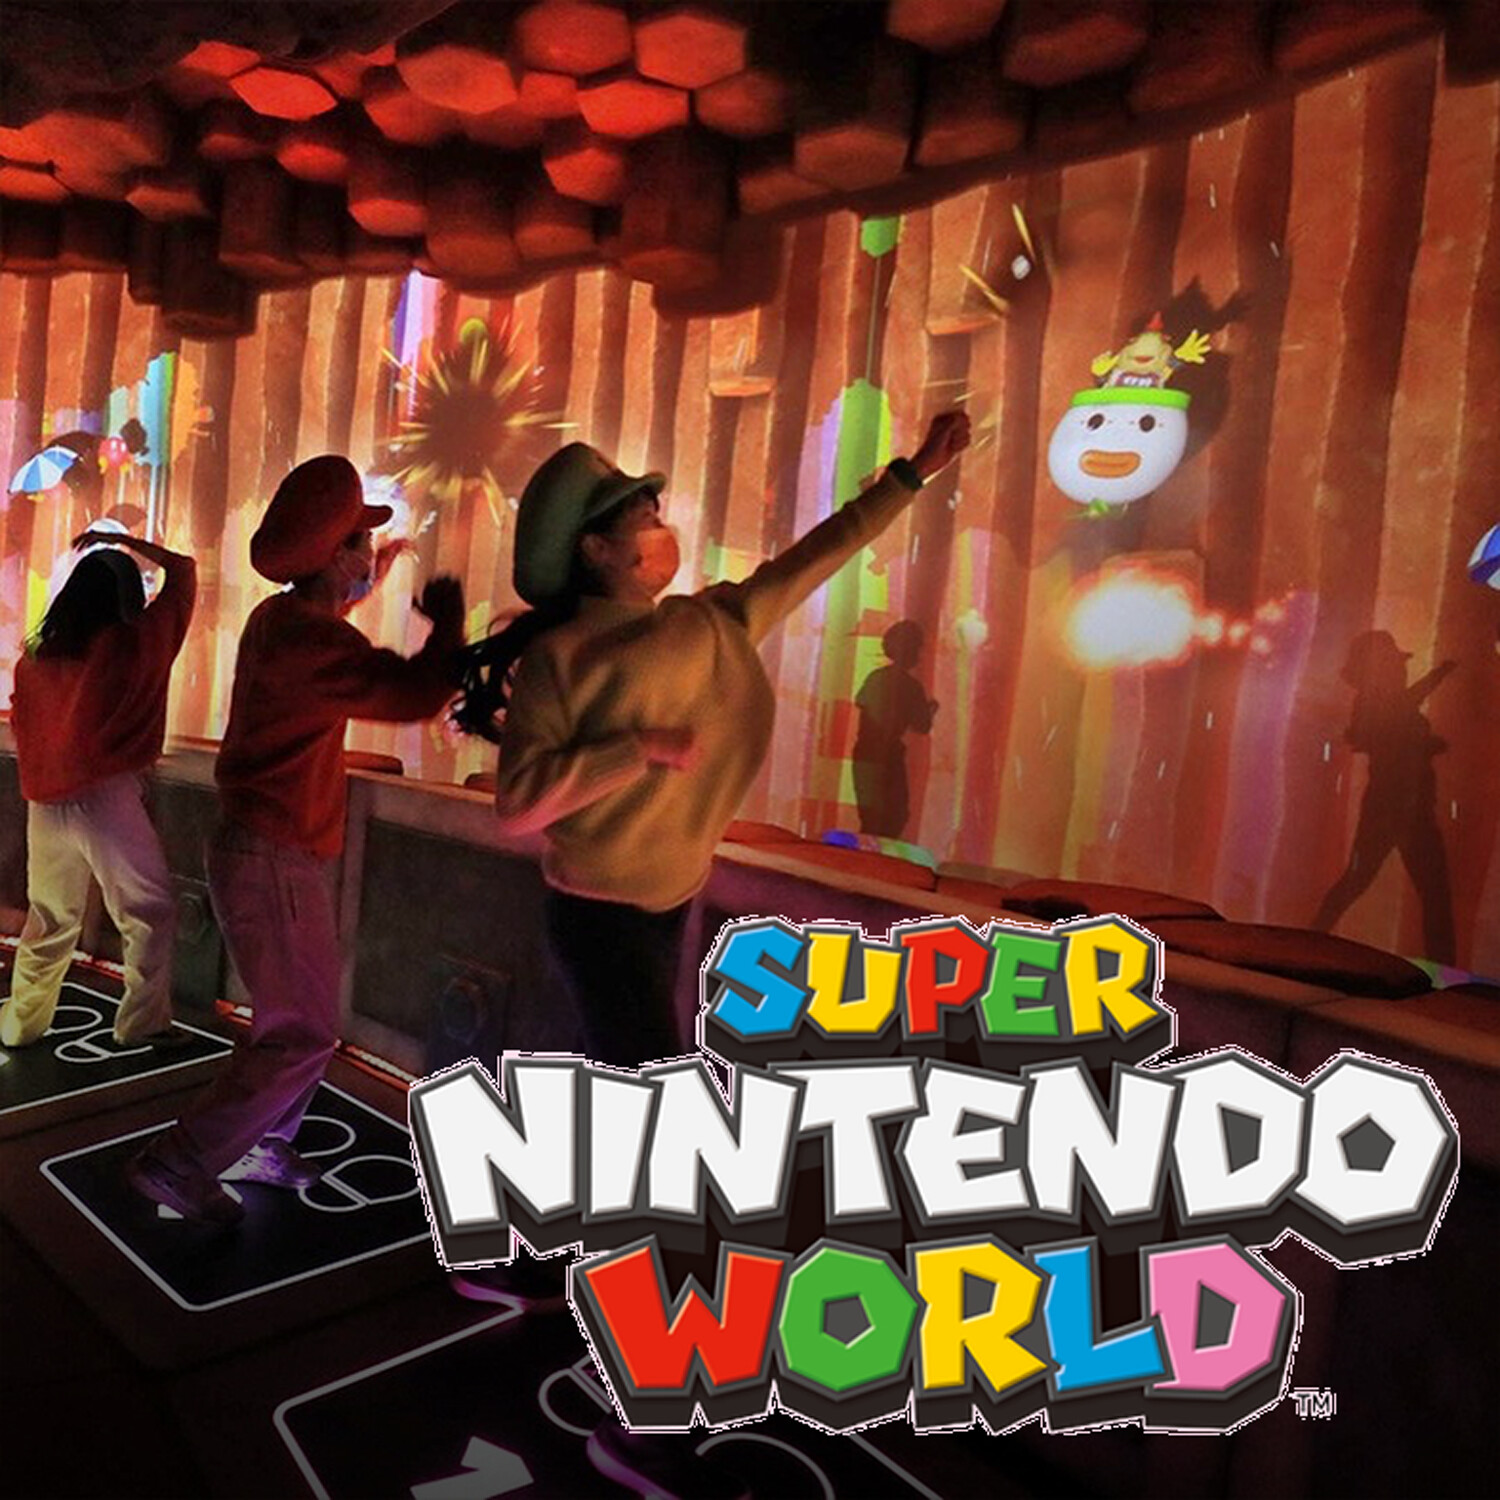 Super Nintendo World: Land and Mini Games